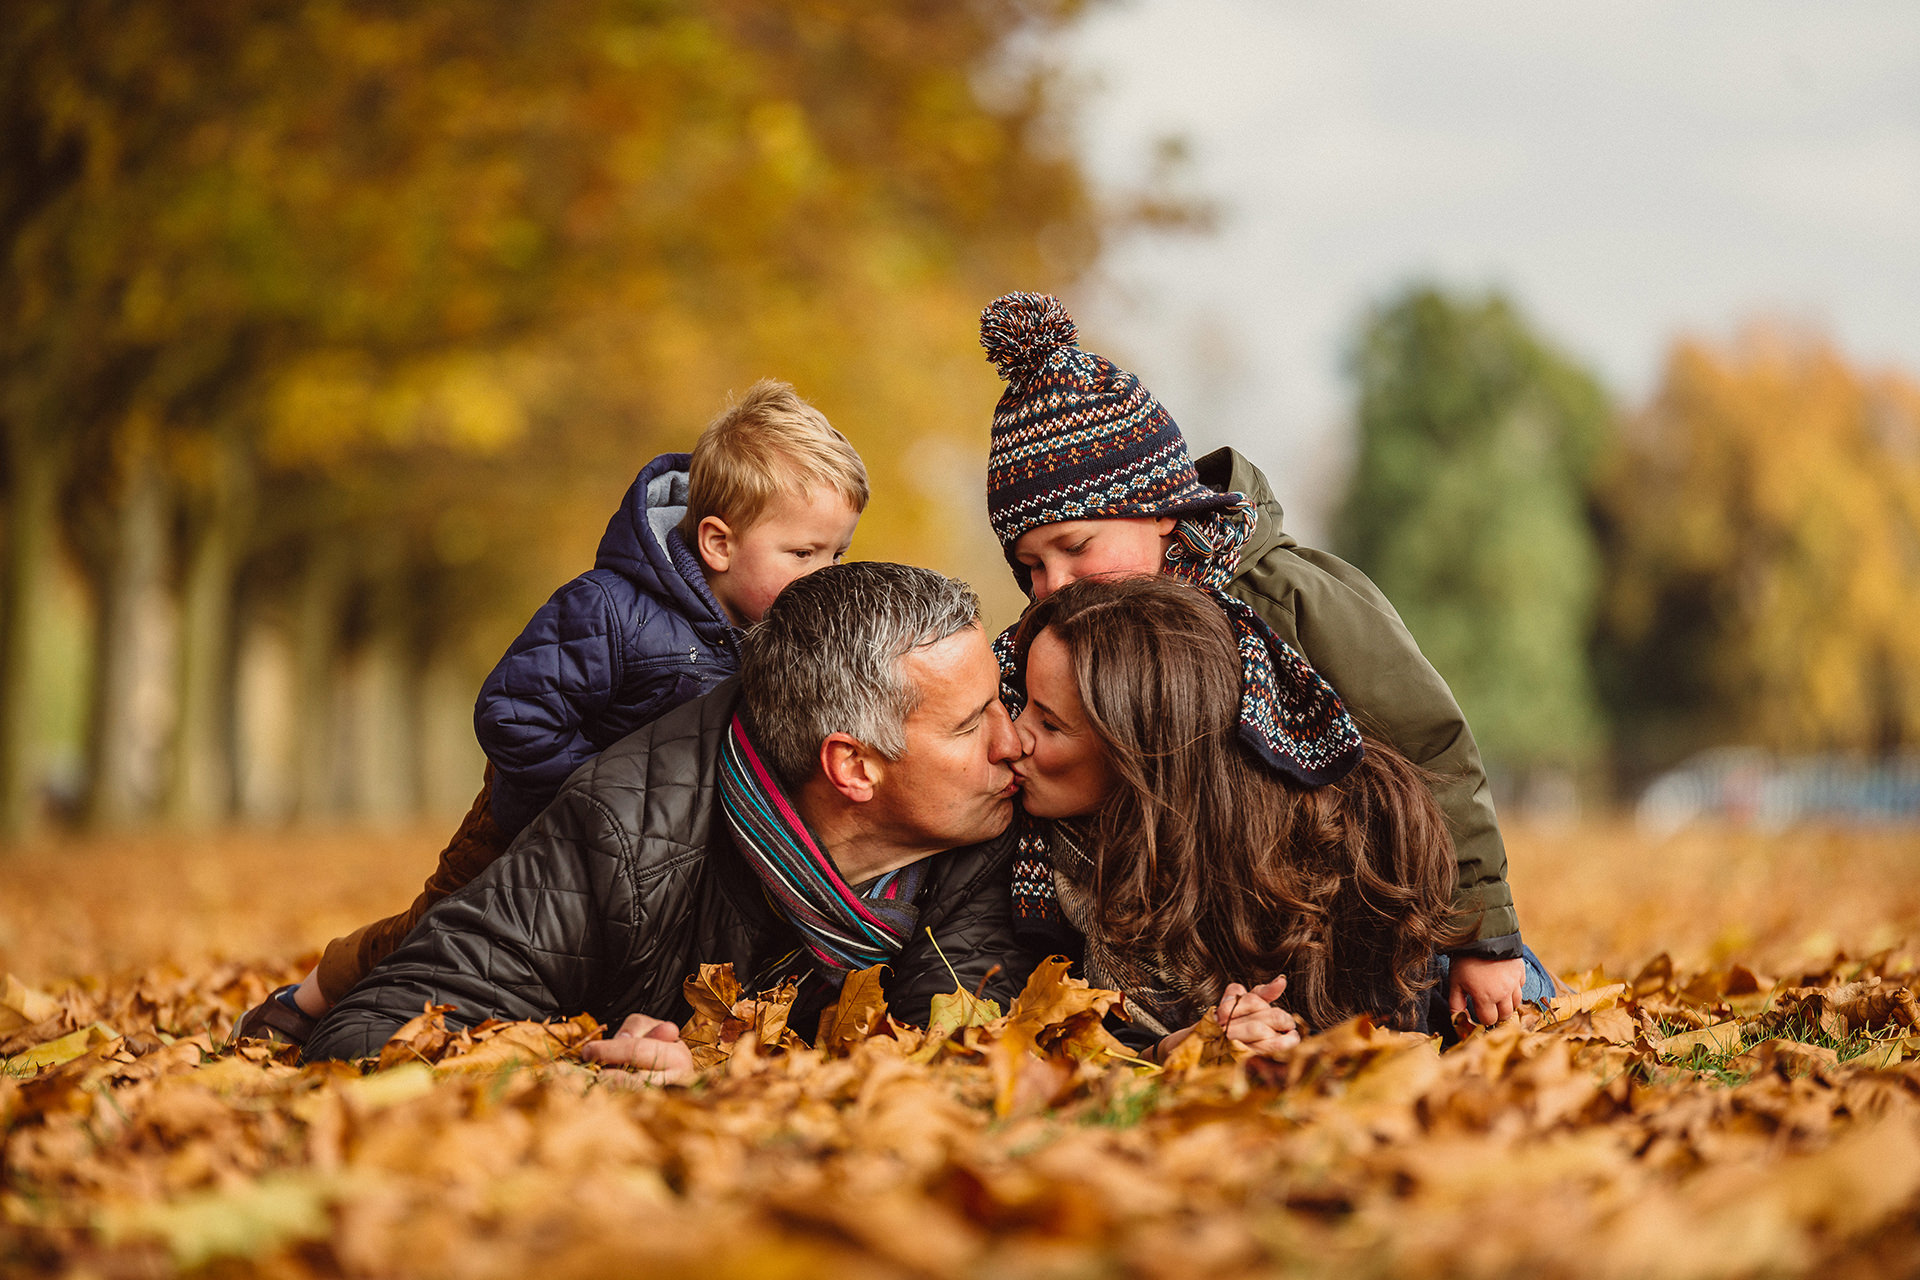 Professional Family, Child, Baby Photographer Oxford Oxfordshire Blenheim Palace Autumn